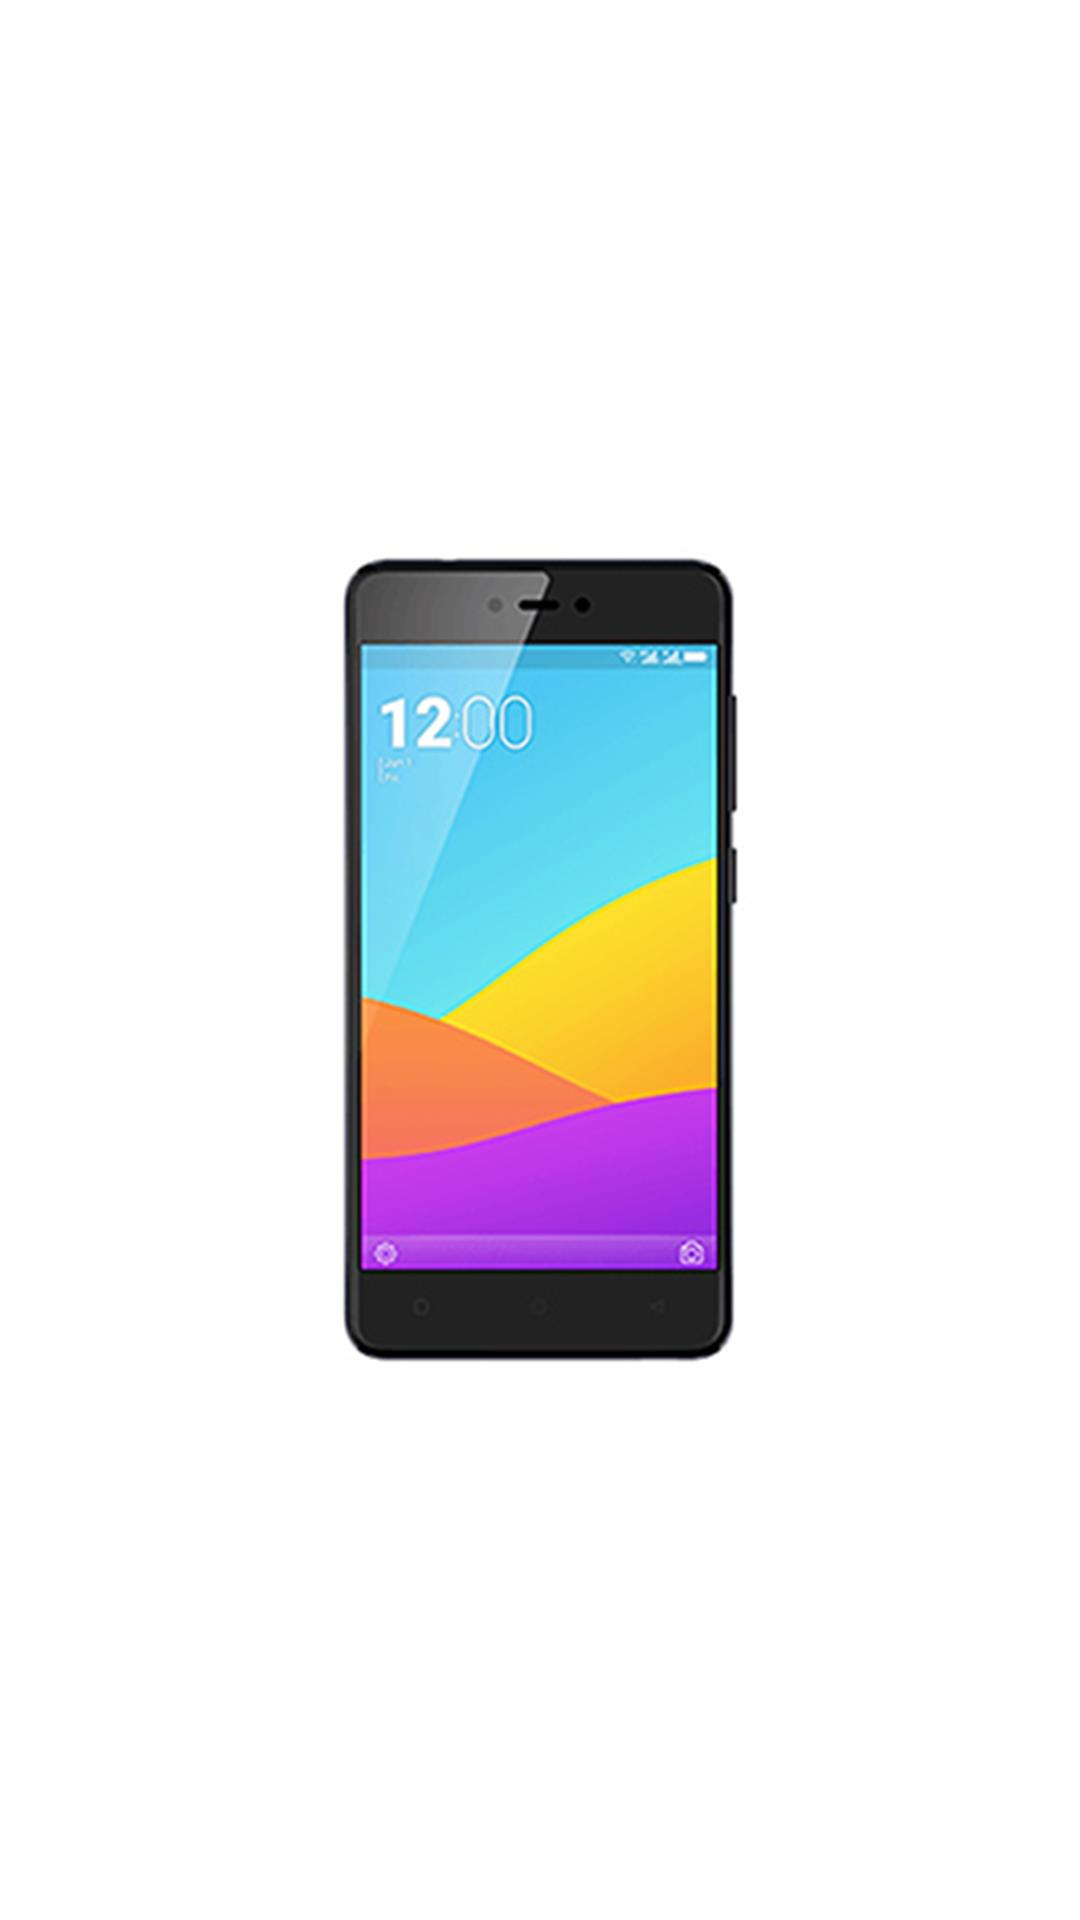 https://assetscdn.paytm.com/images/catalog/product/M/MO/MOBGIONEE-F103-A-TO251972A9D9E45E/0x1920/70/0.jpg